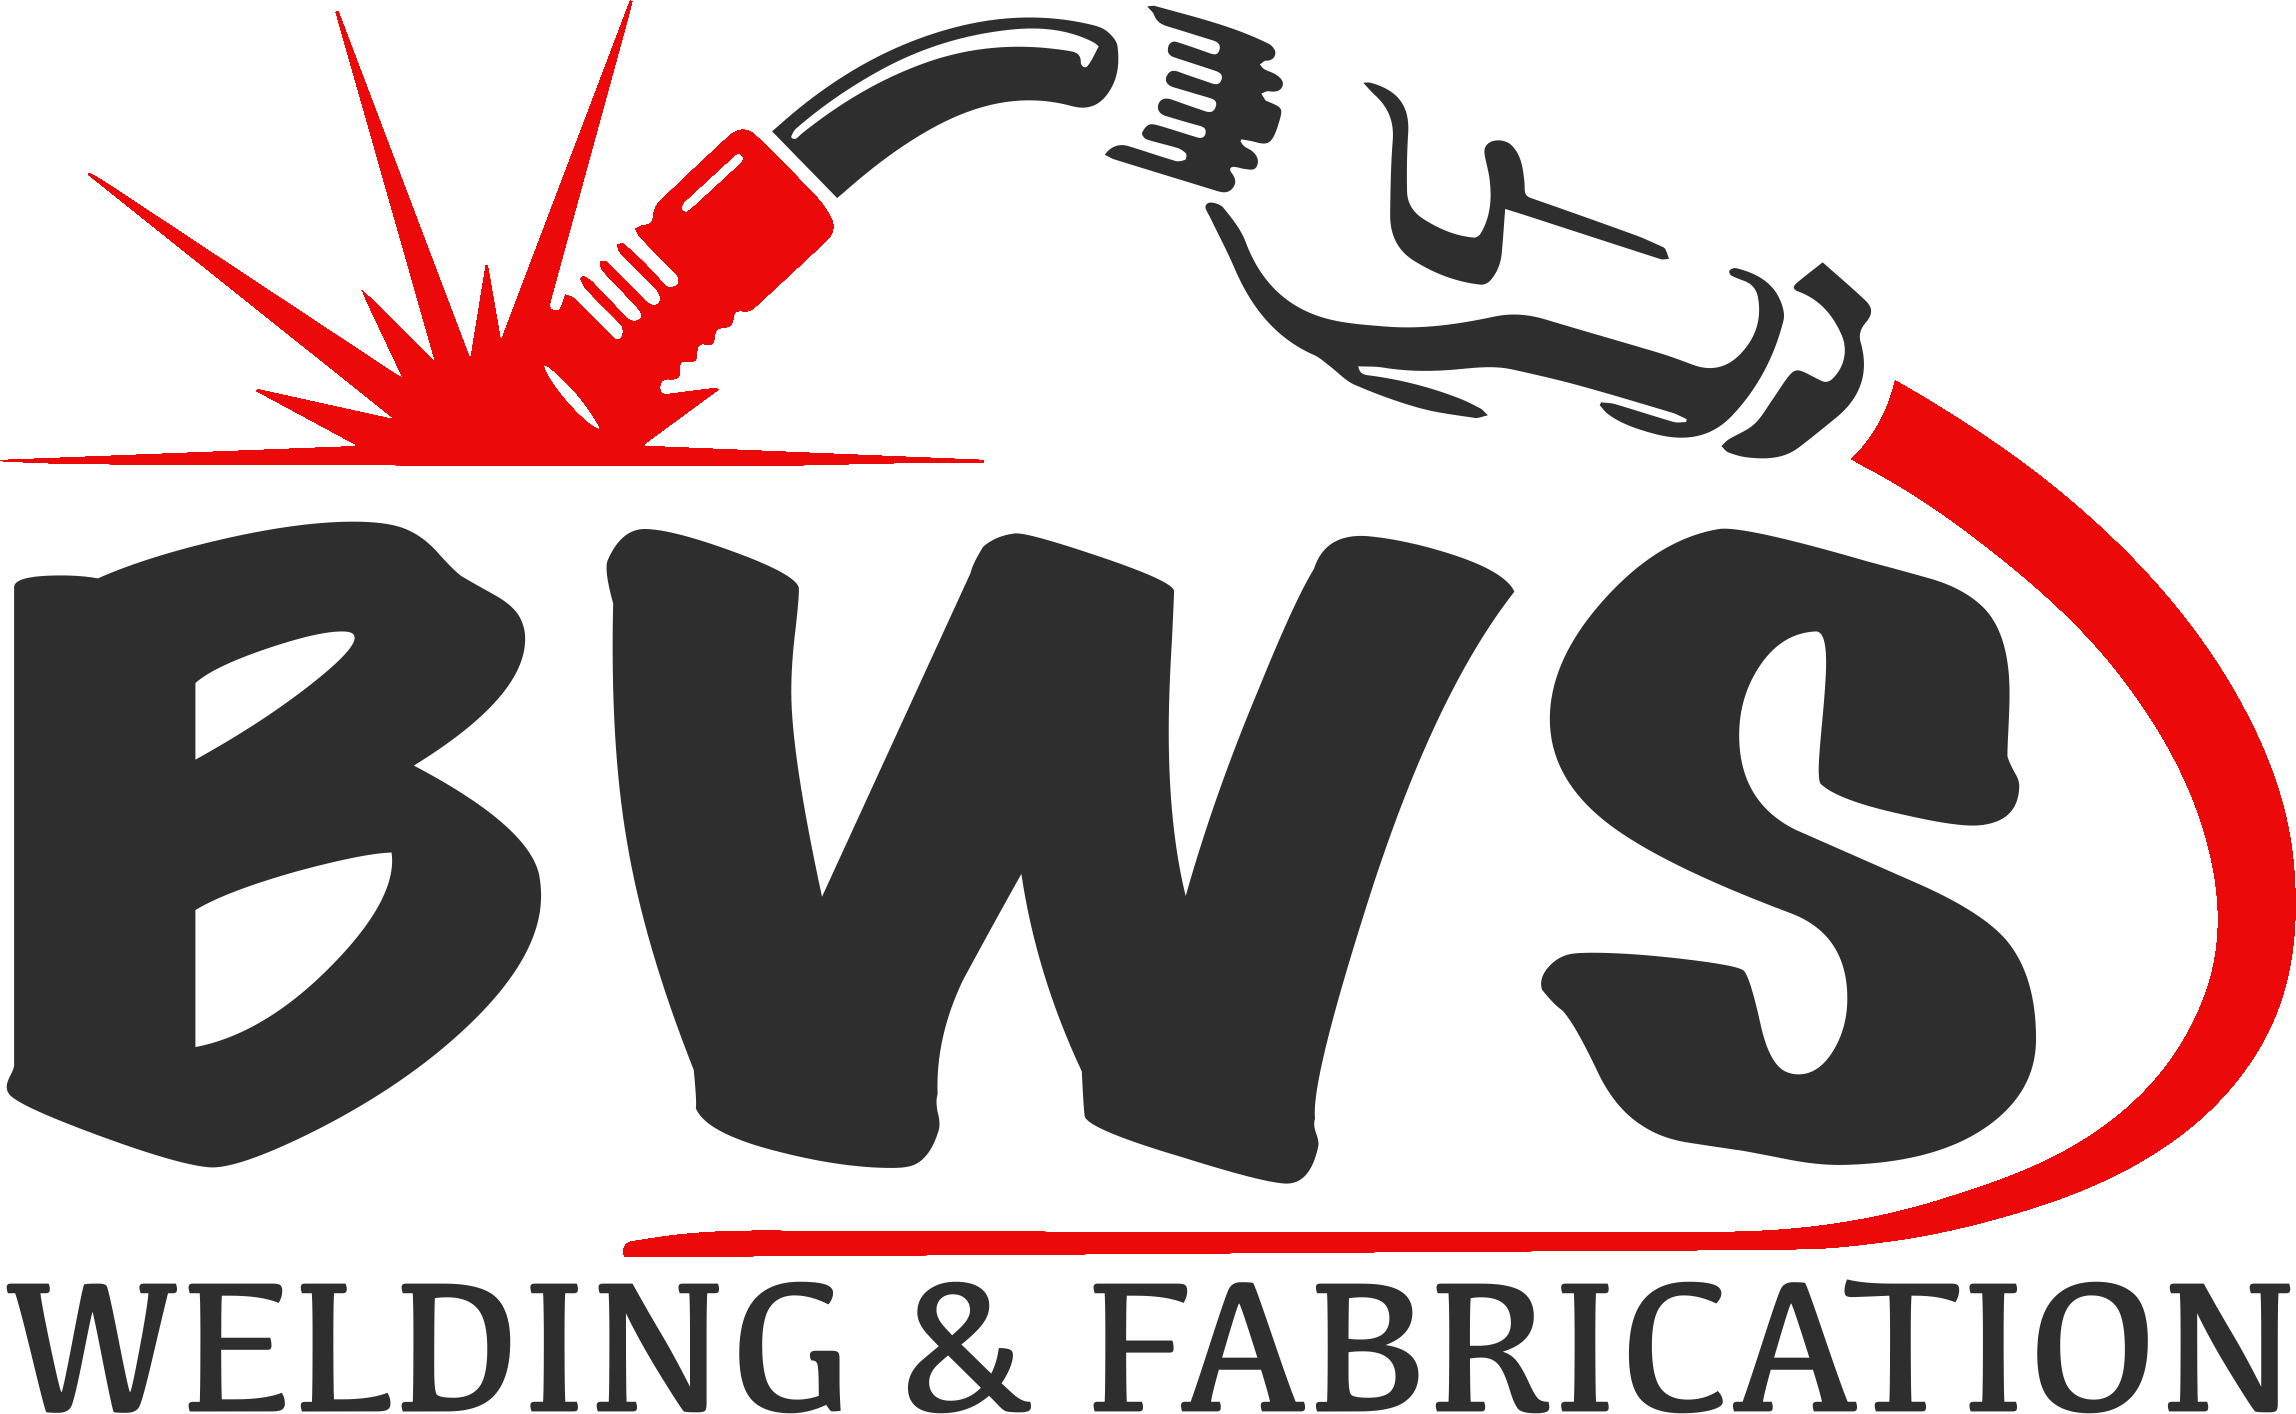 Bws and fabrication services. Welding clipart pipe welding